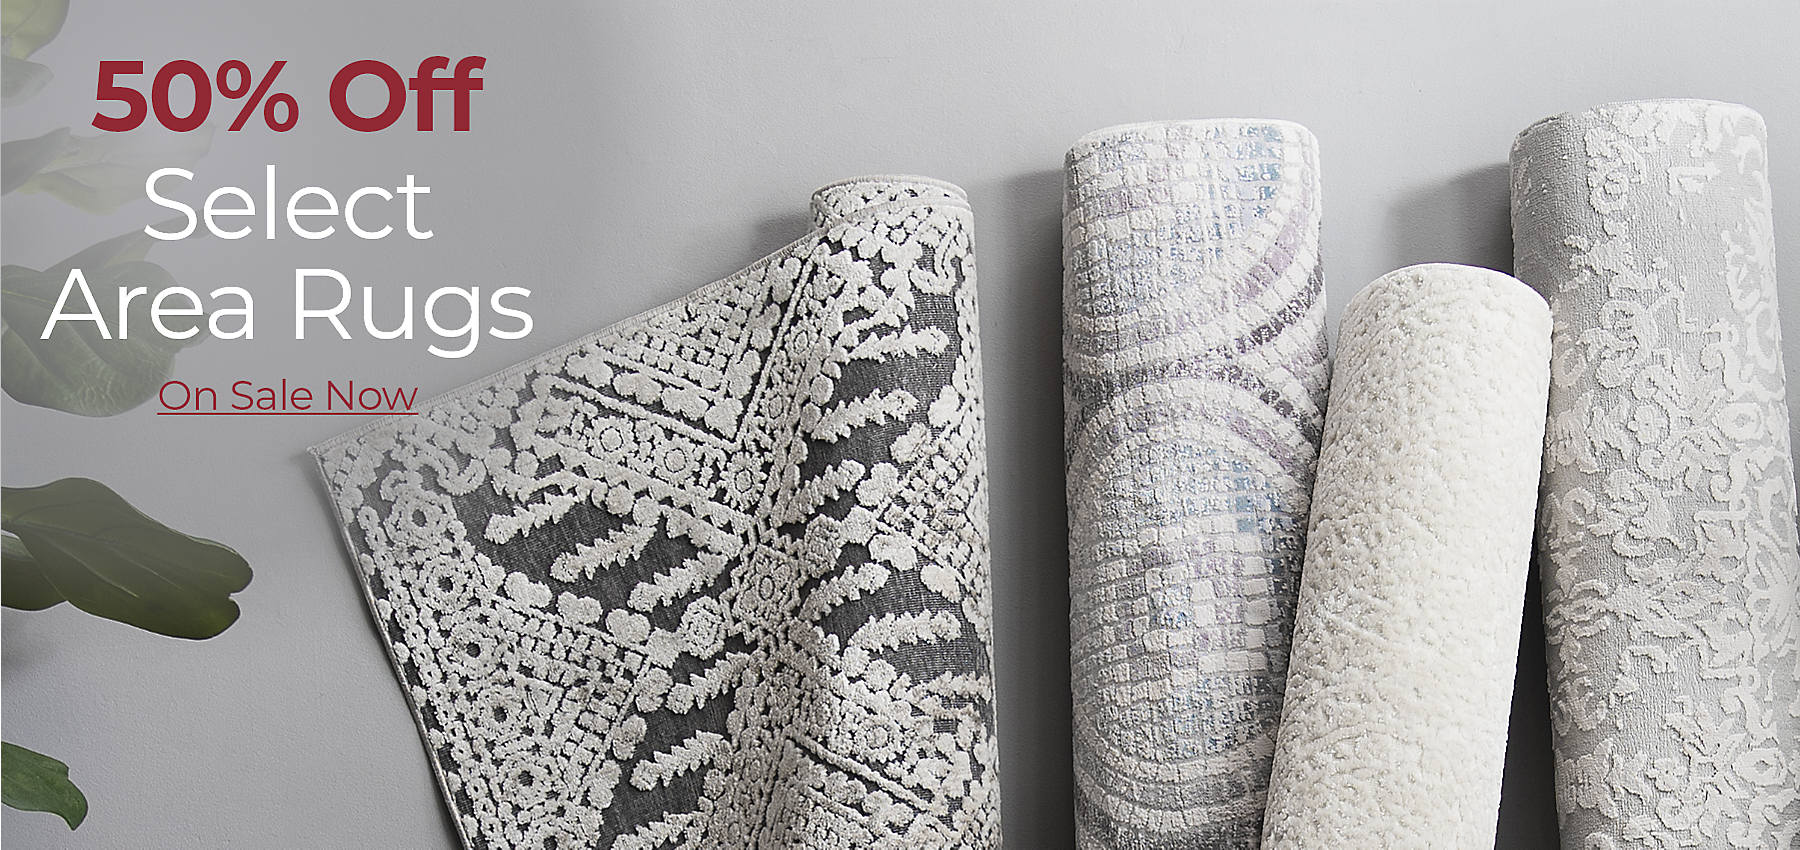 50% Off Select Area Rugs On Sale Now